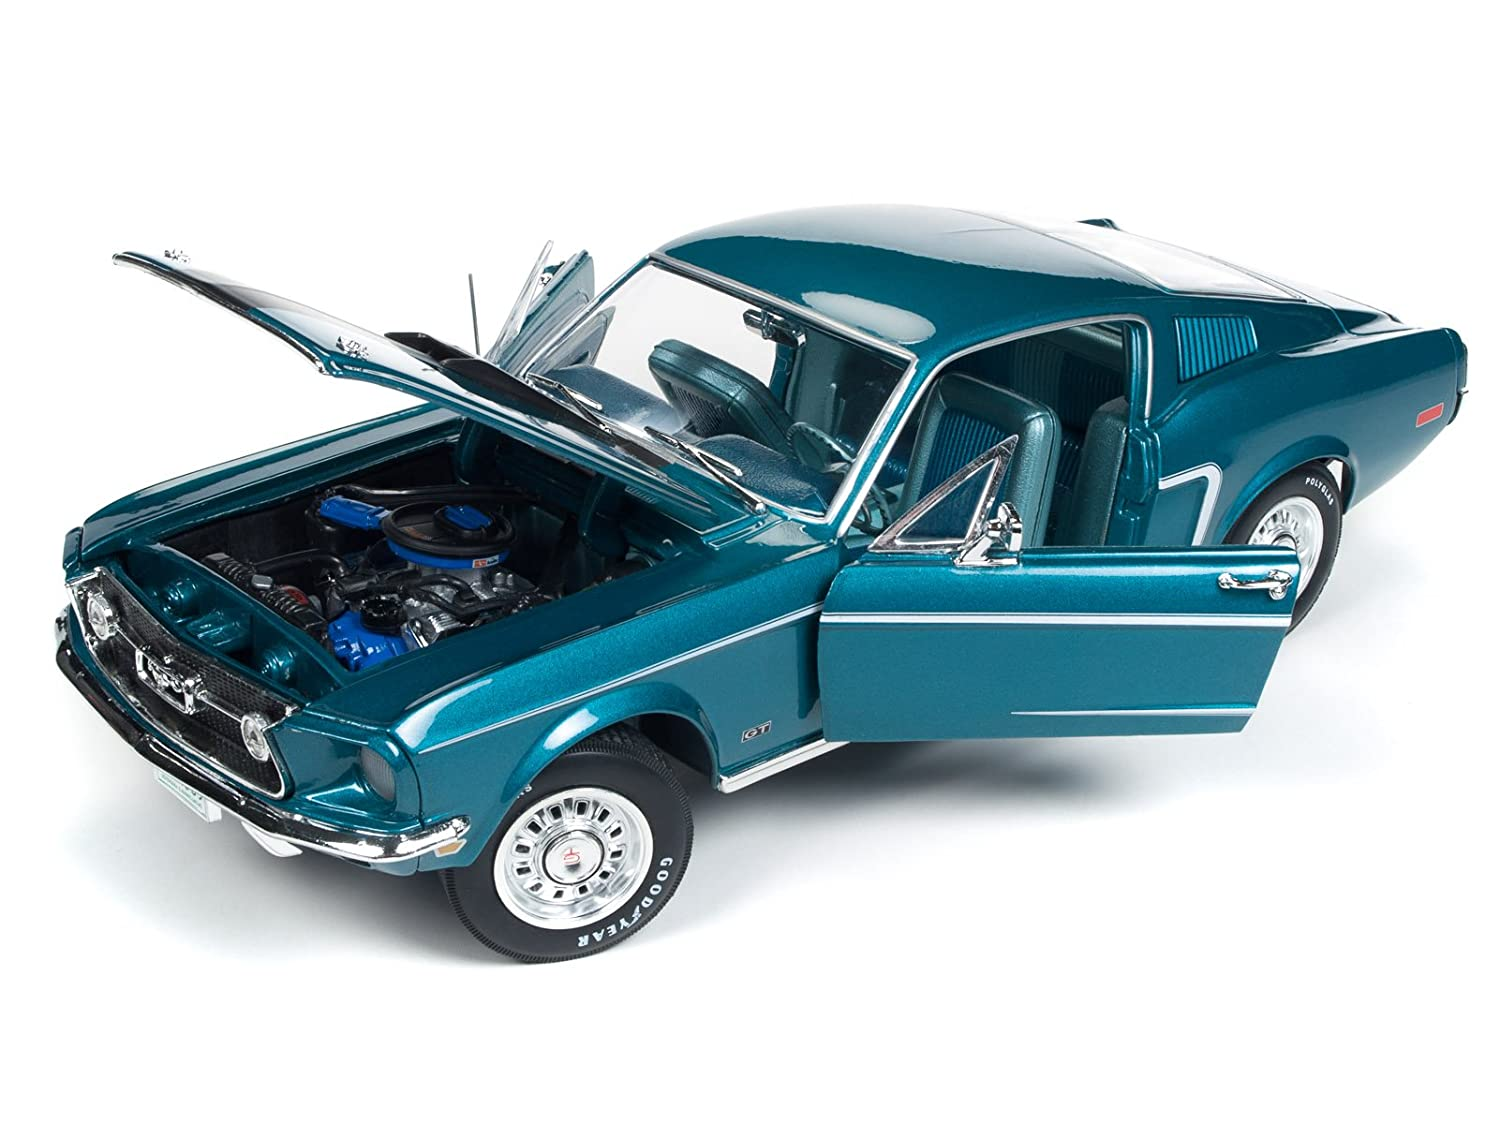 Amazon com 1968 ford mustang gt 2 2 aqua blueclass of 68 50th anniversary limited edition to 1002 pieces worldwide 1 18 diecast model car by autoworld